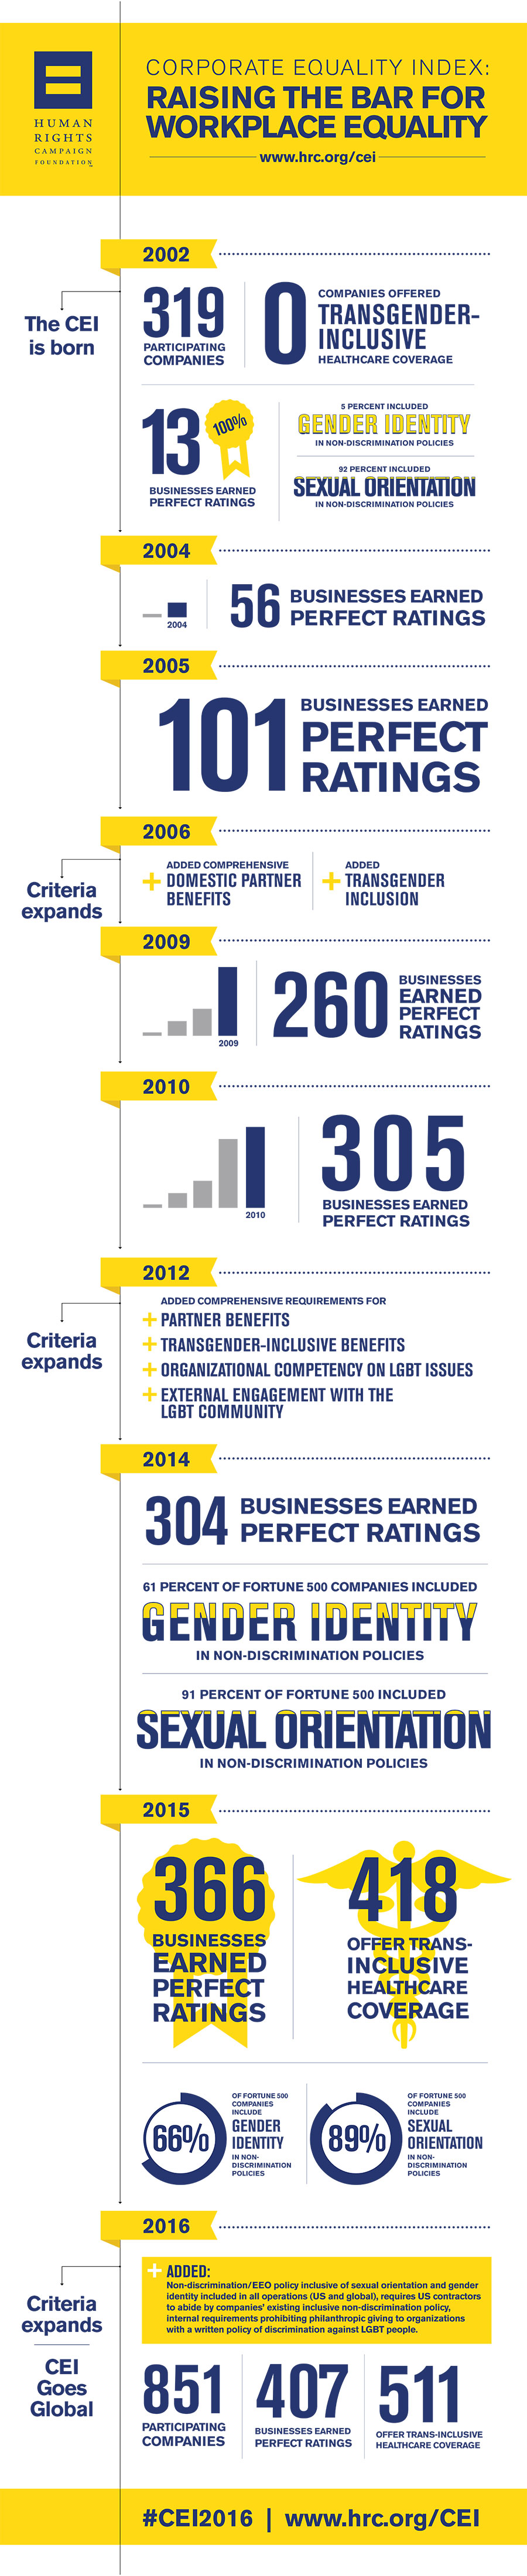 CEI; Corporate Equality Index